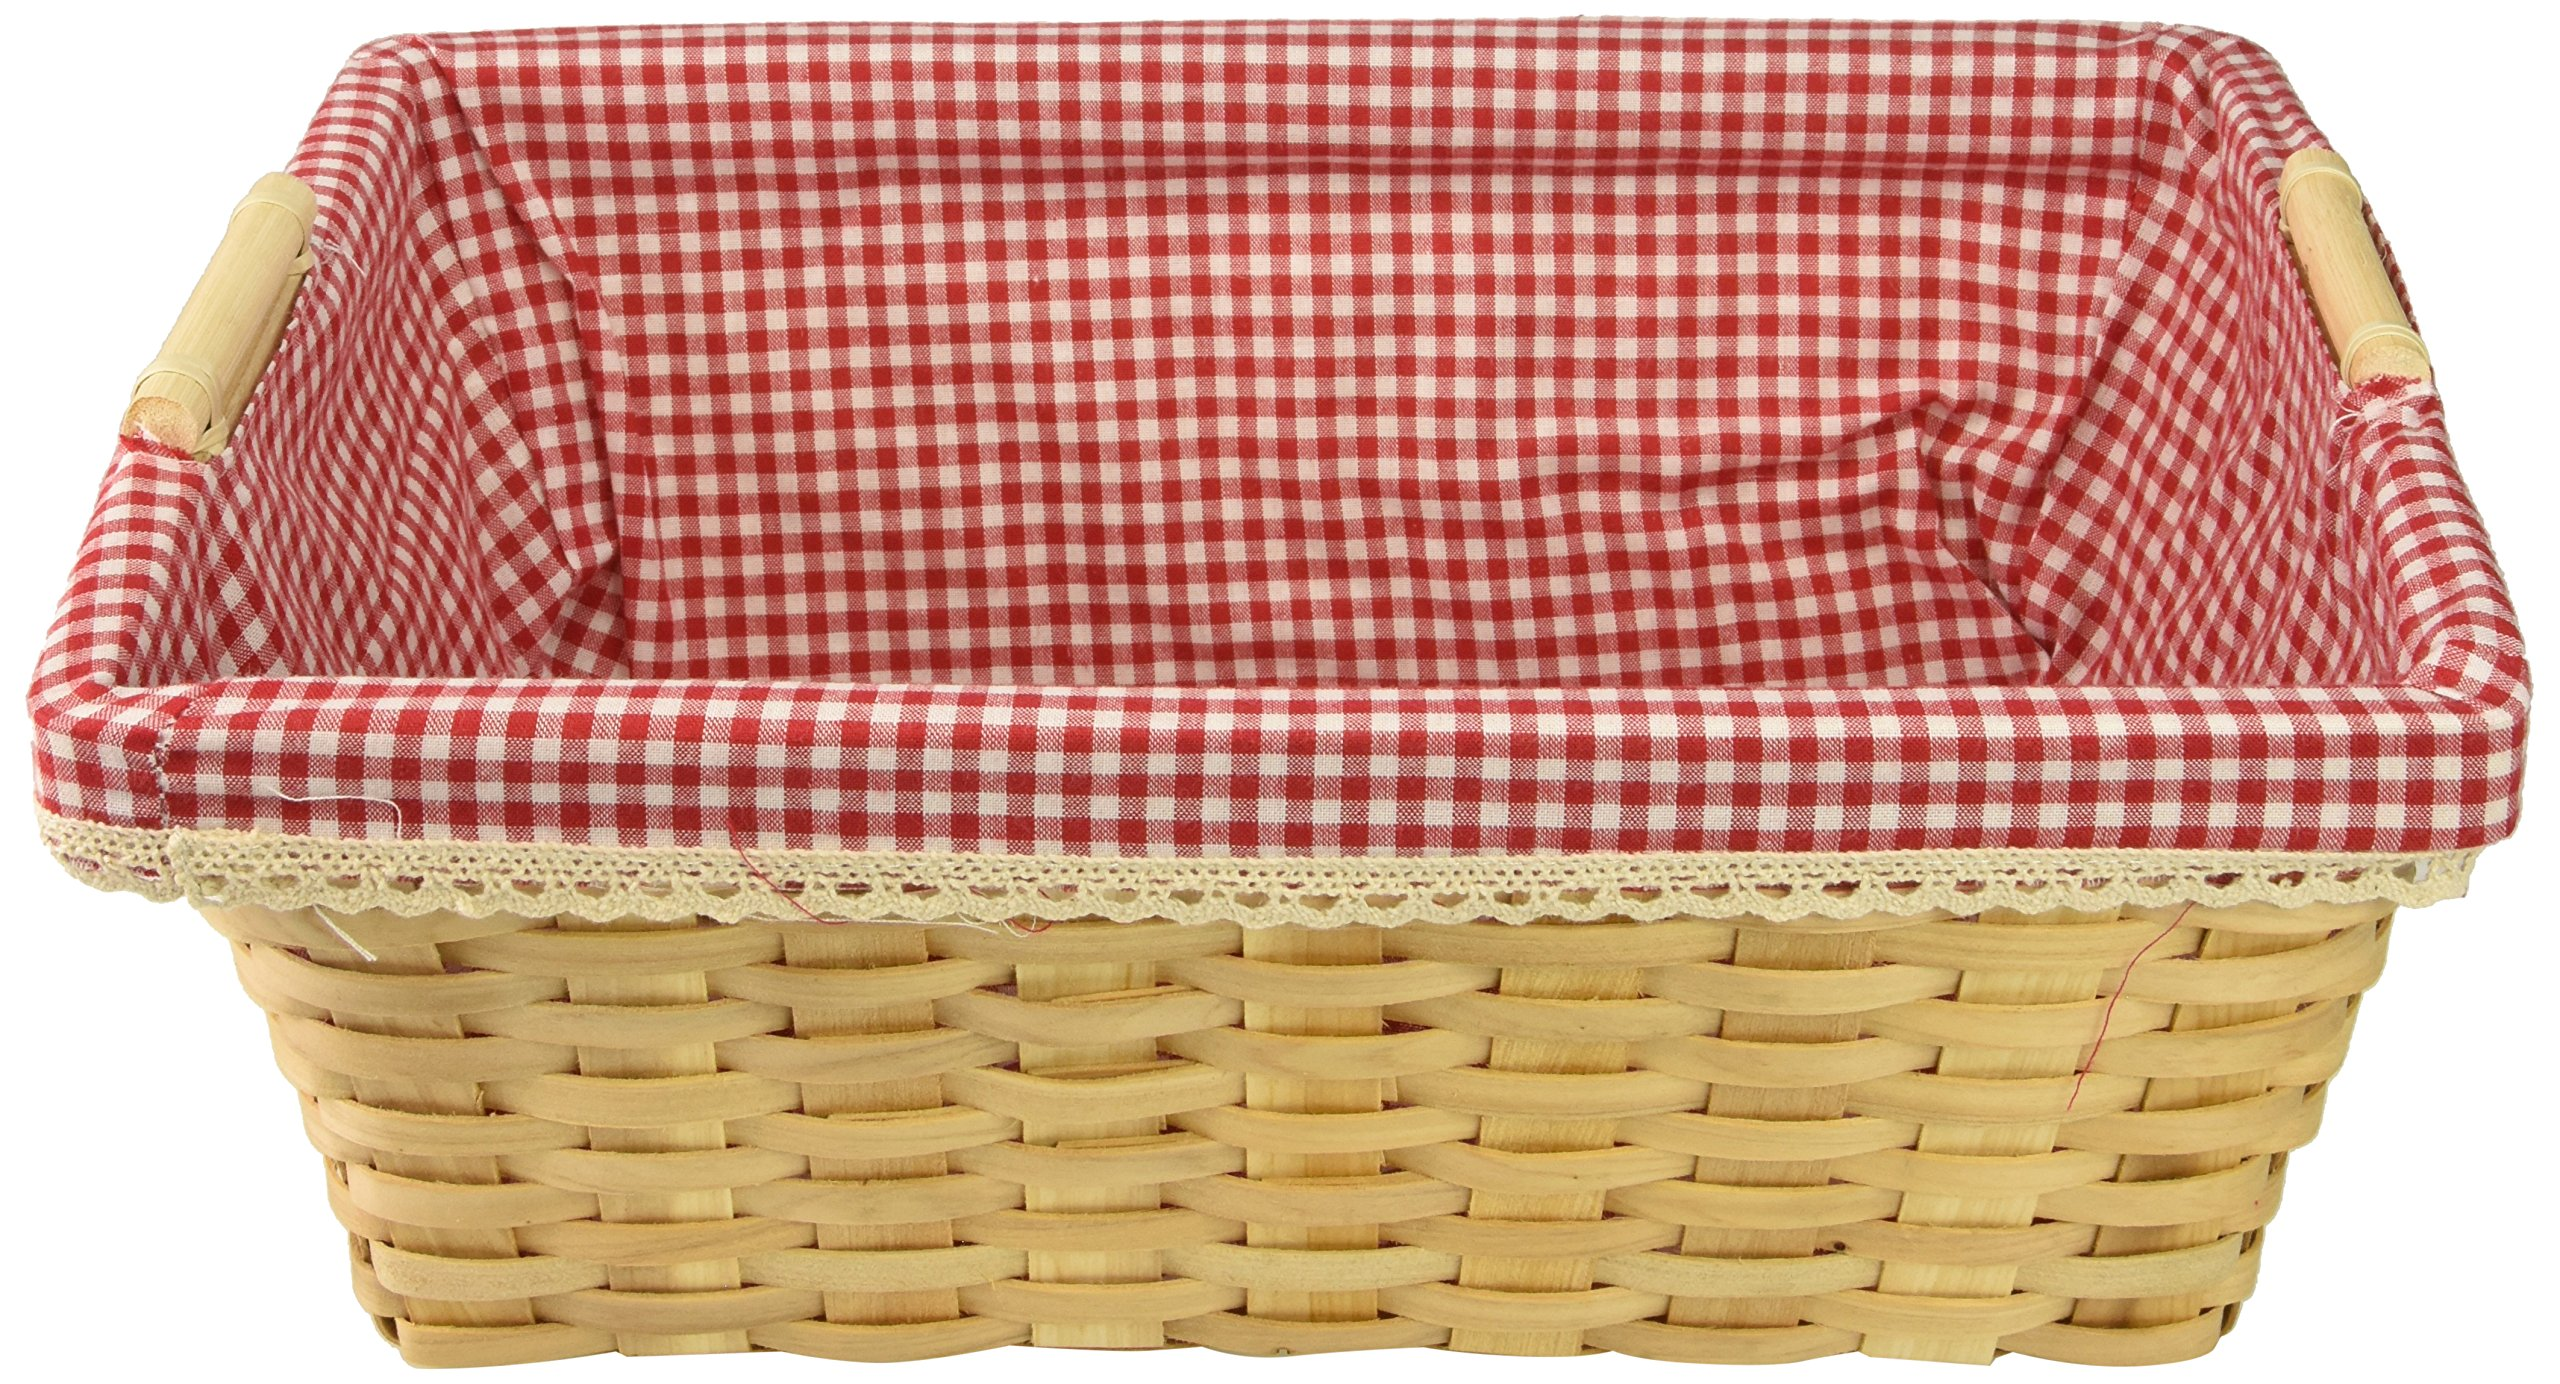 Vintiquewise(TM) Gingham Lined Baskets Set of 2 by Vintiquewise (Image #3)